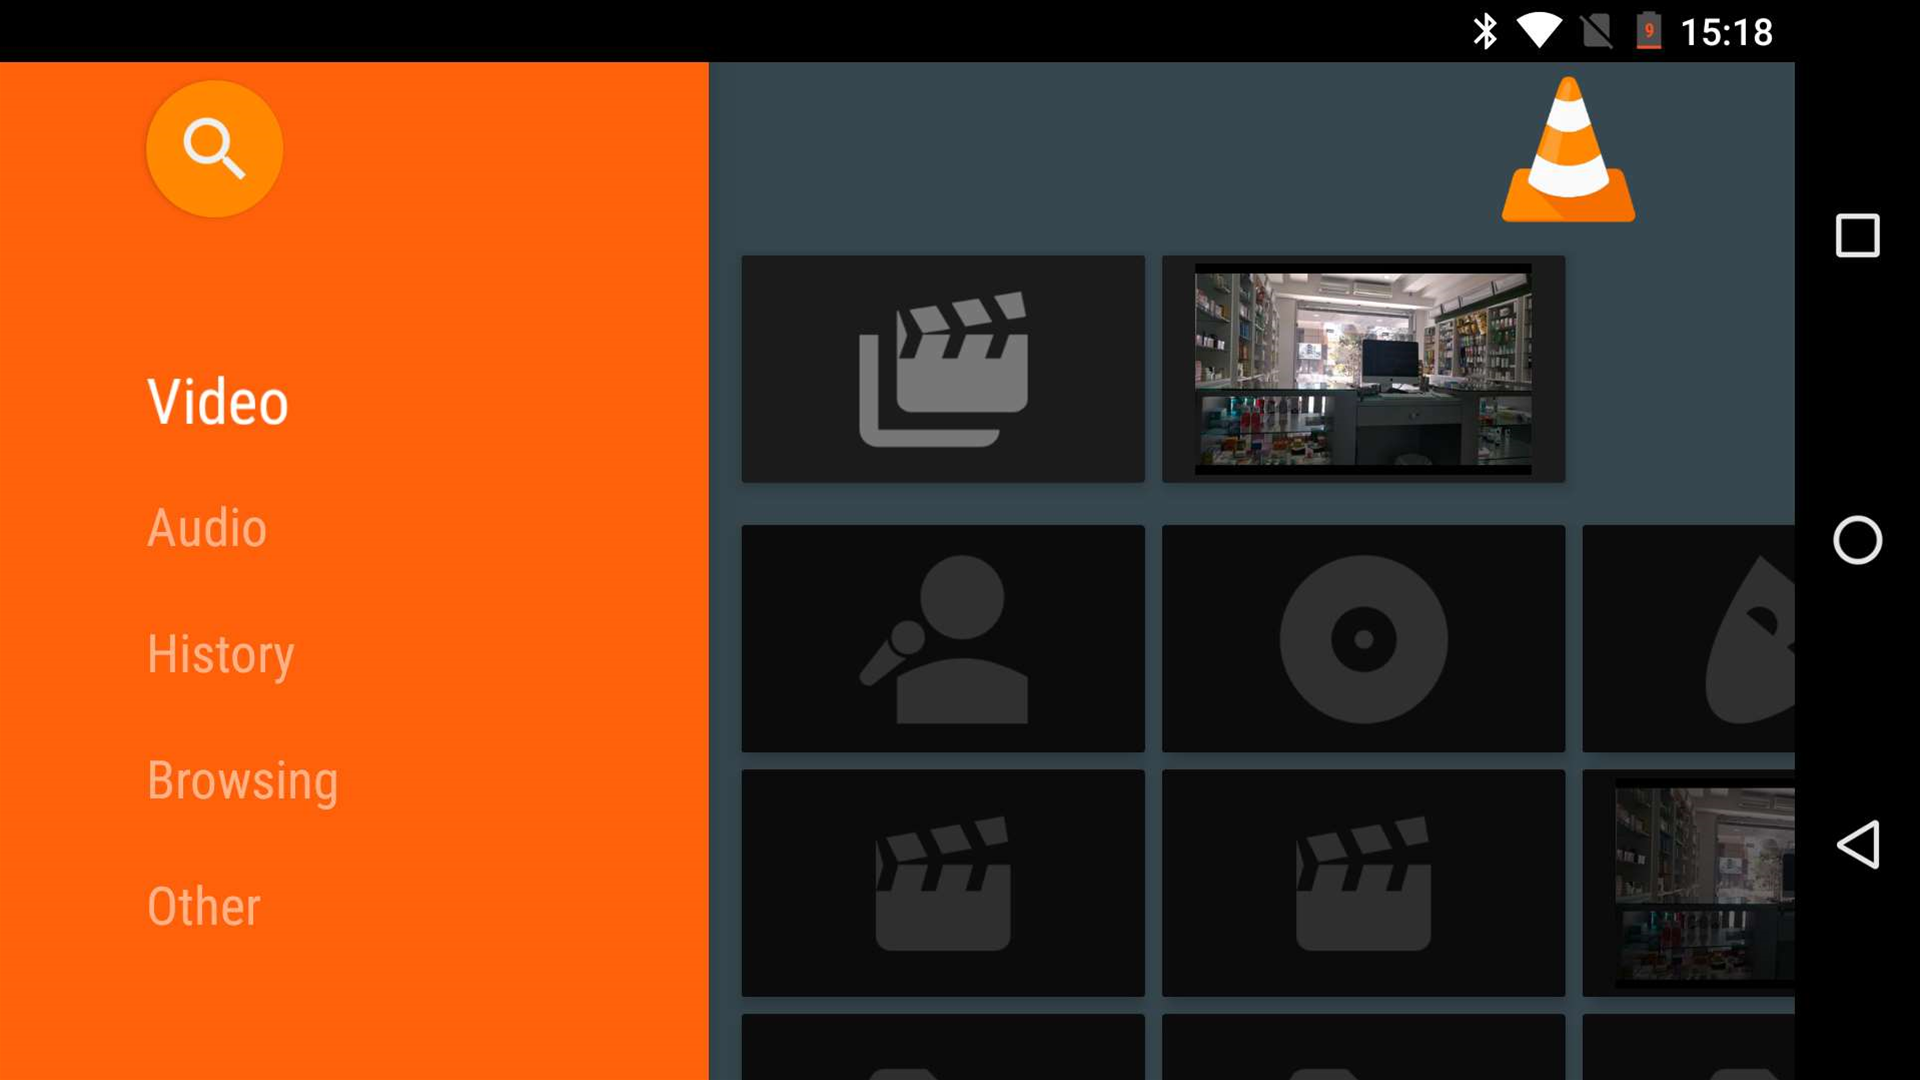 VLC for Android 2.0 merges Android TV and mobile builds together